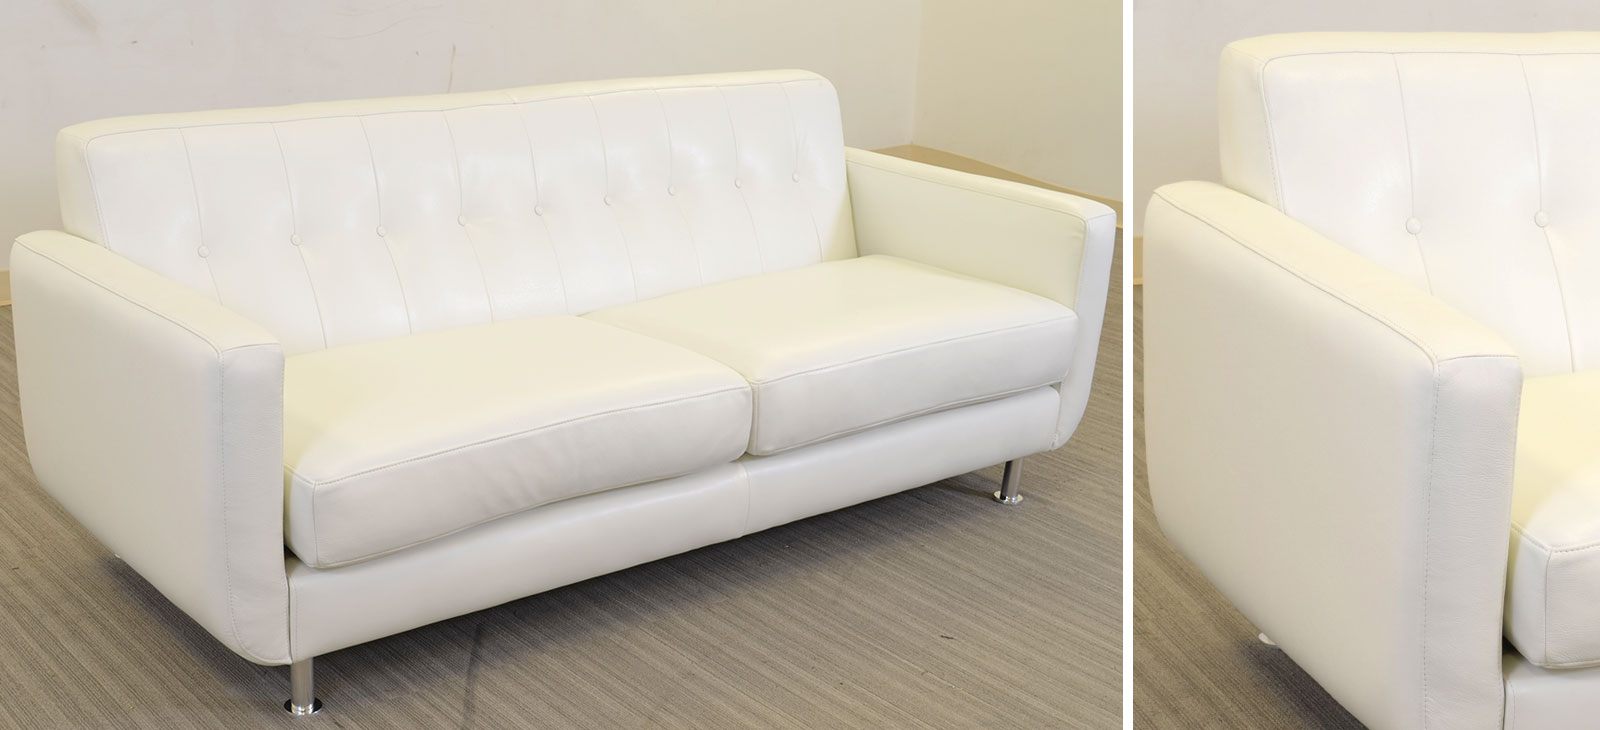 Greta 2 Cushion Sofa Angle